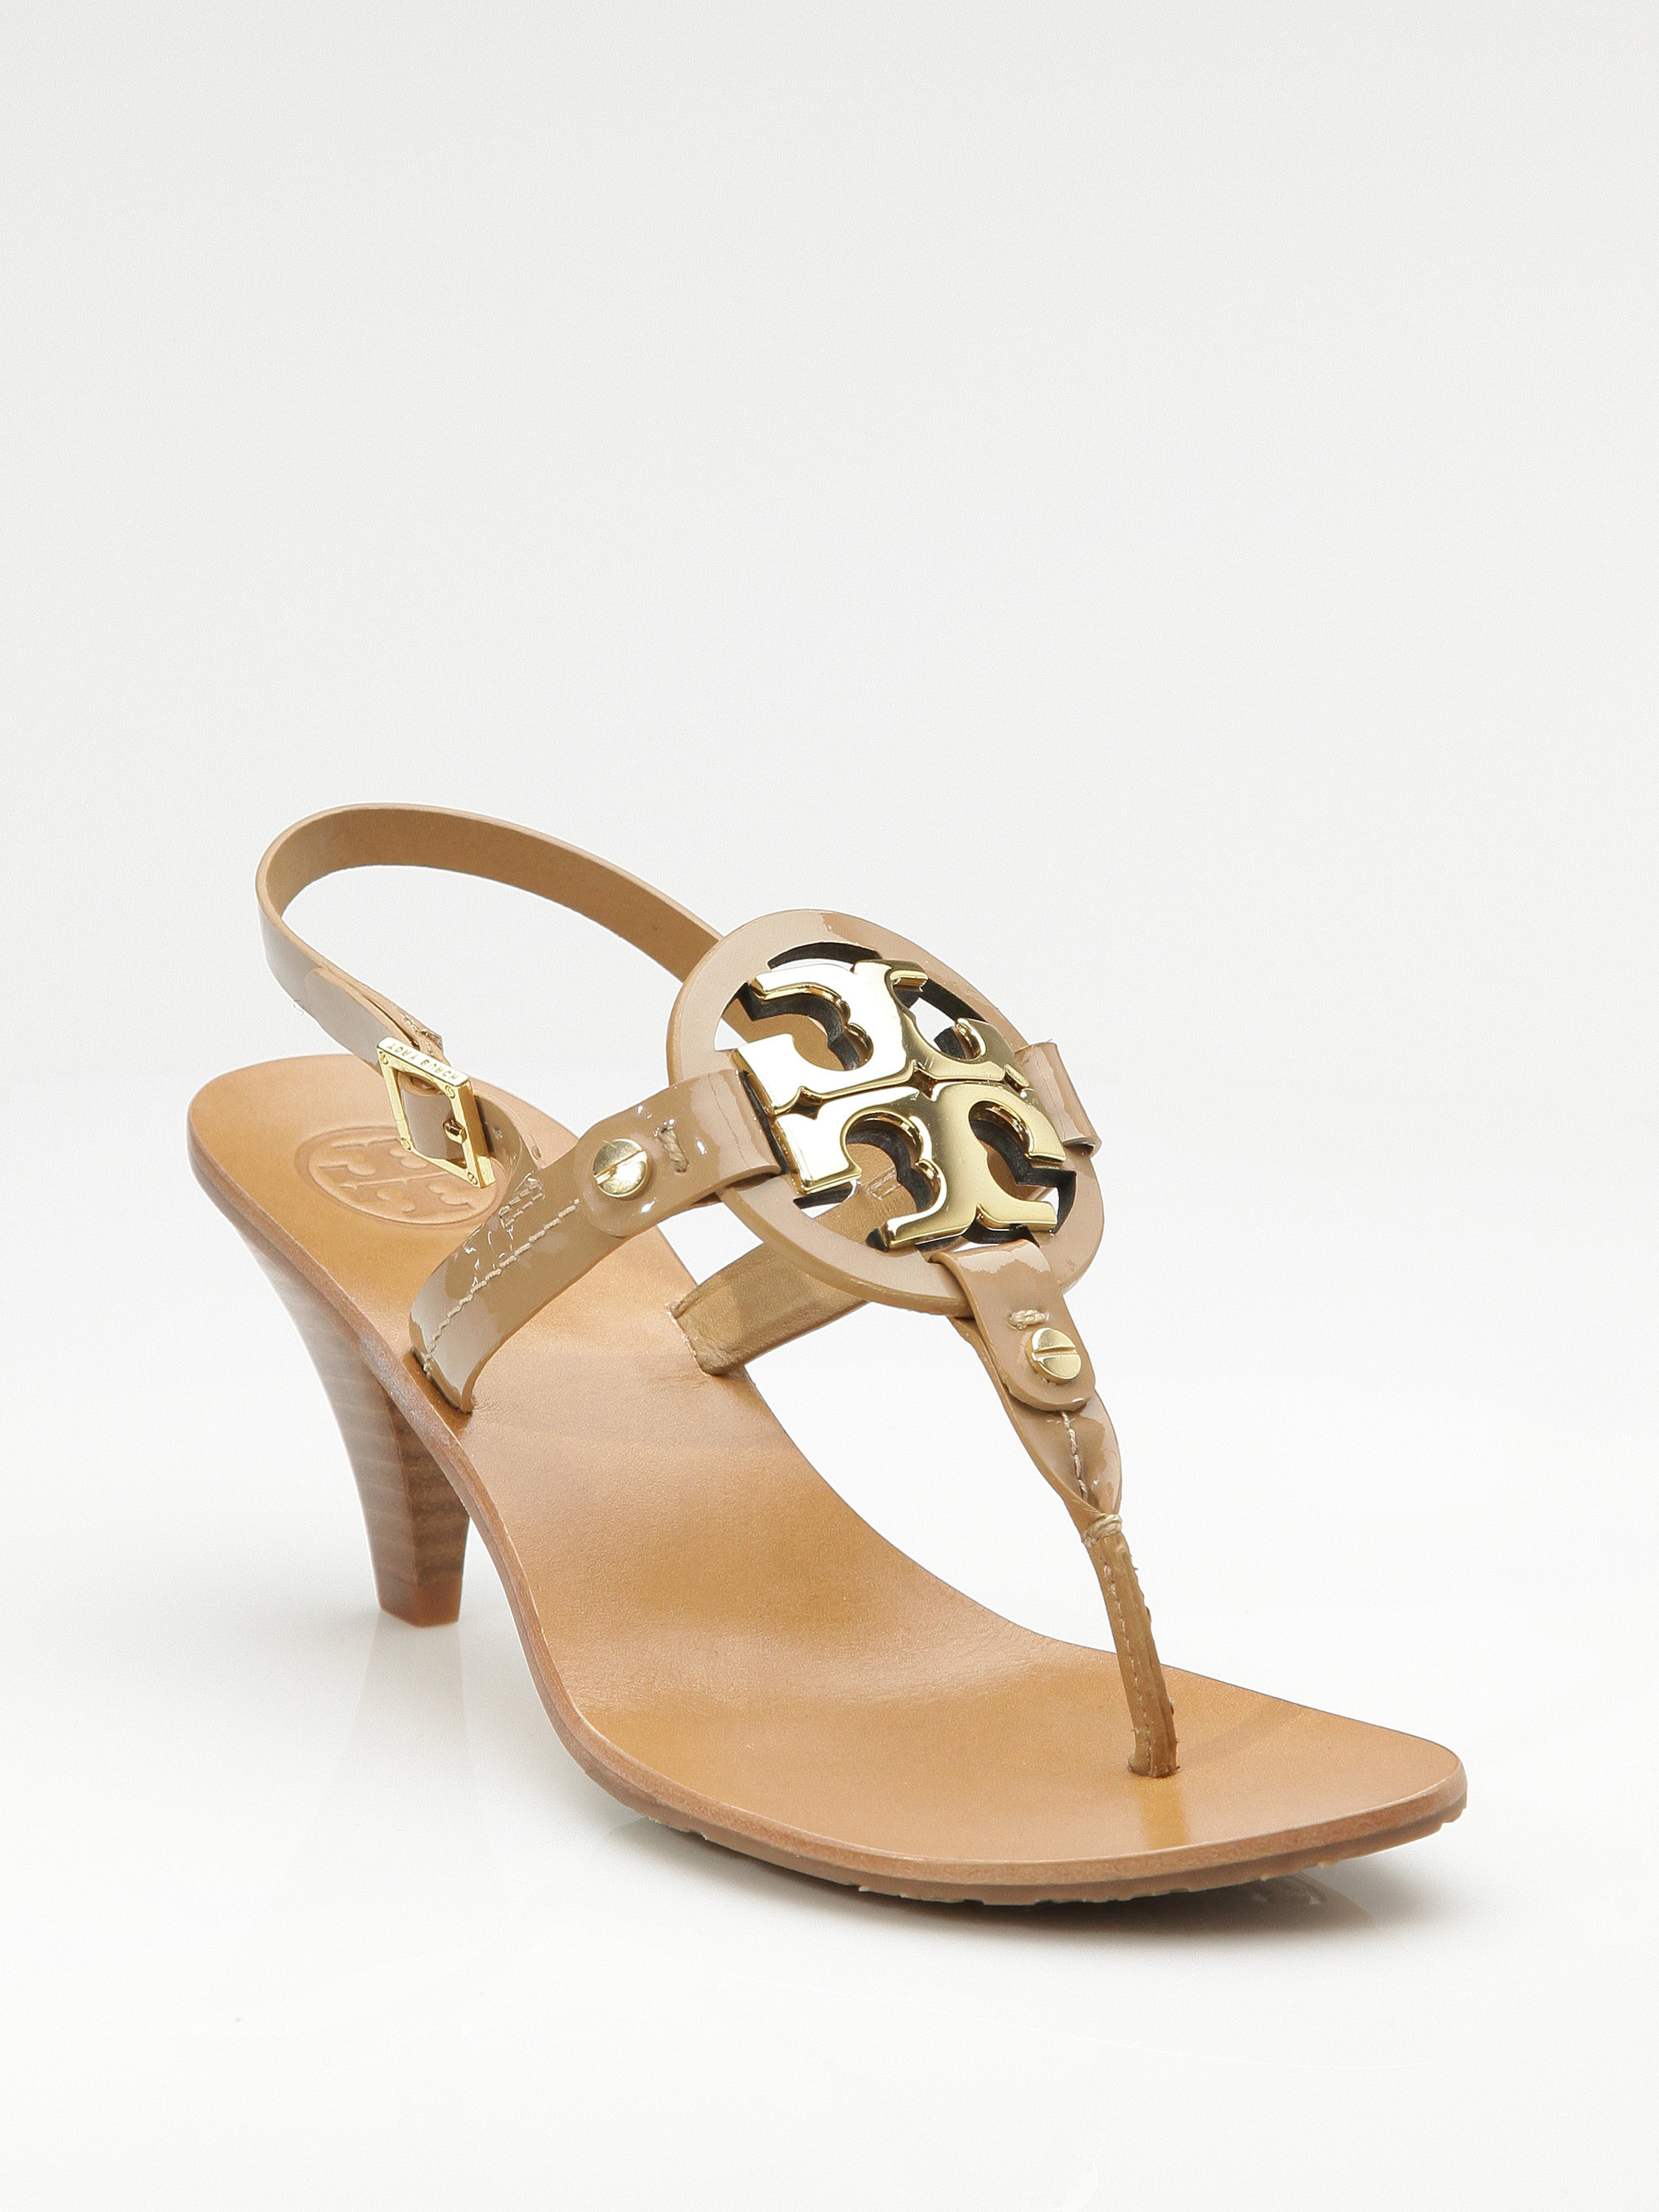 Tory burch Holly 2 Kitten Heel Logo Patent Thong Sandals in ...